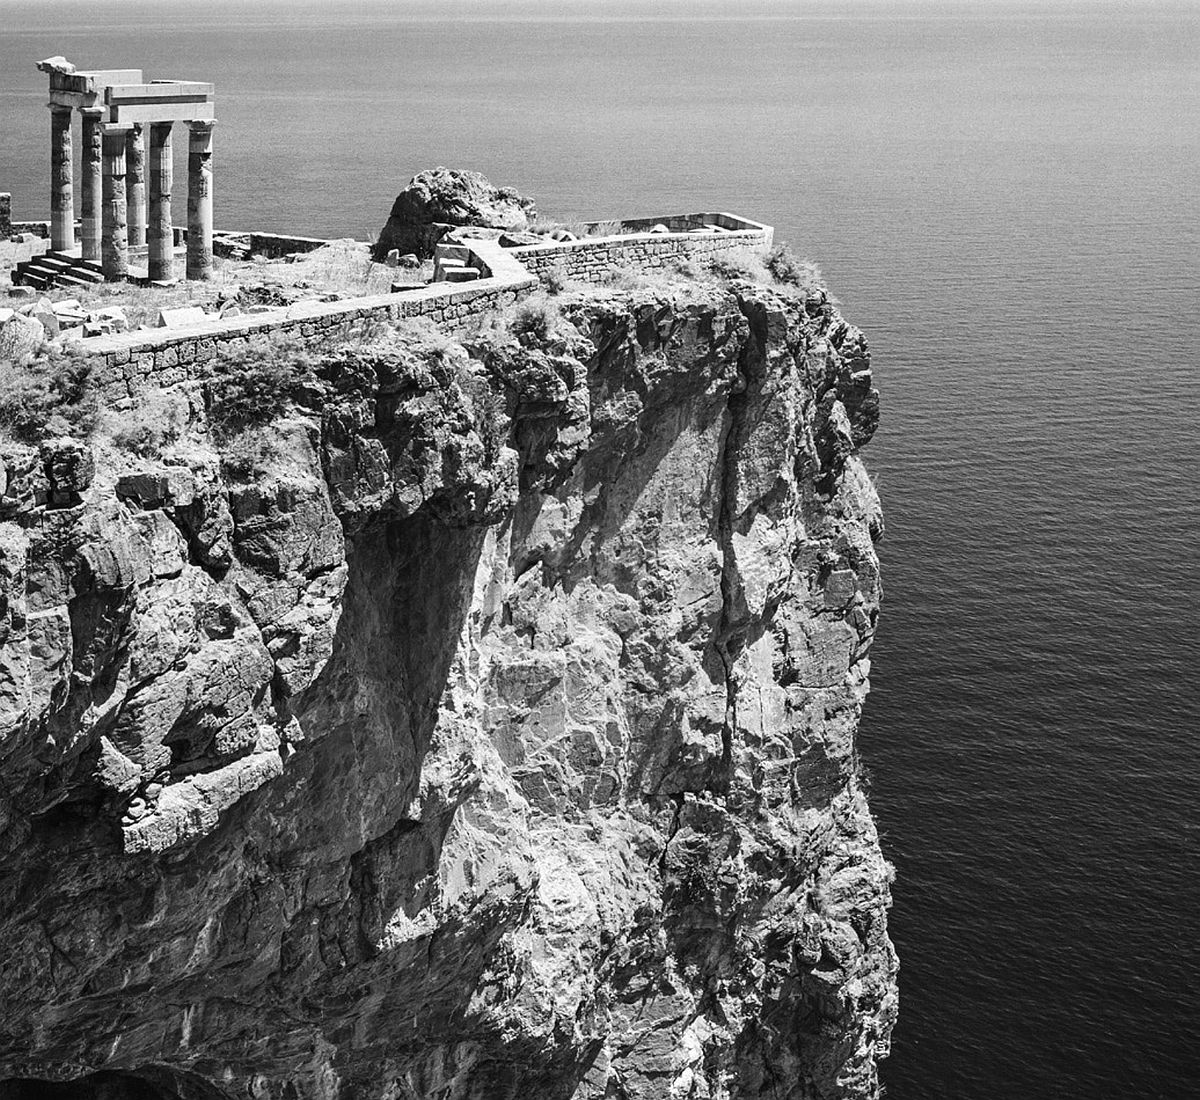 """Lindos. Photograph by Robert McCabe on show in the exhibition """"Chronography-An Exhibition for the 180th anniversary (1837-2017) of the Archaeological Society""""."""